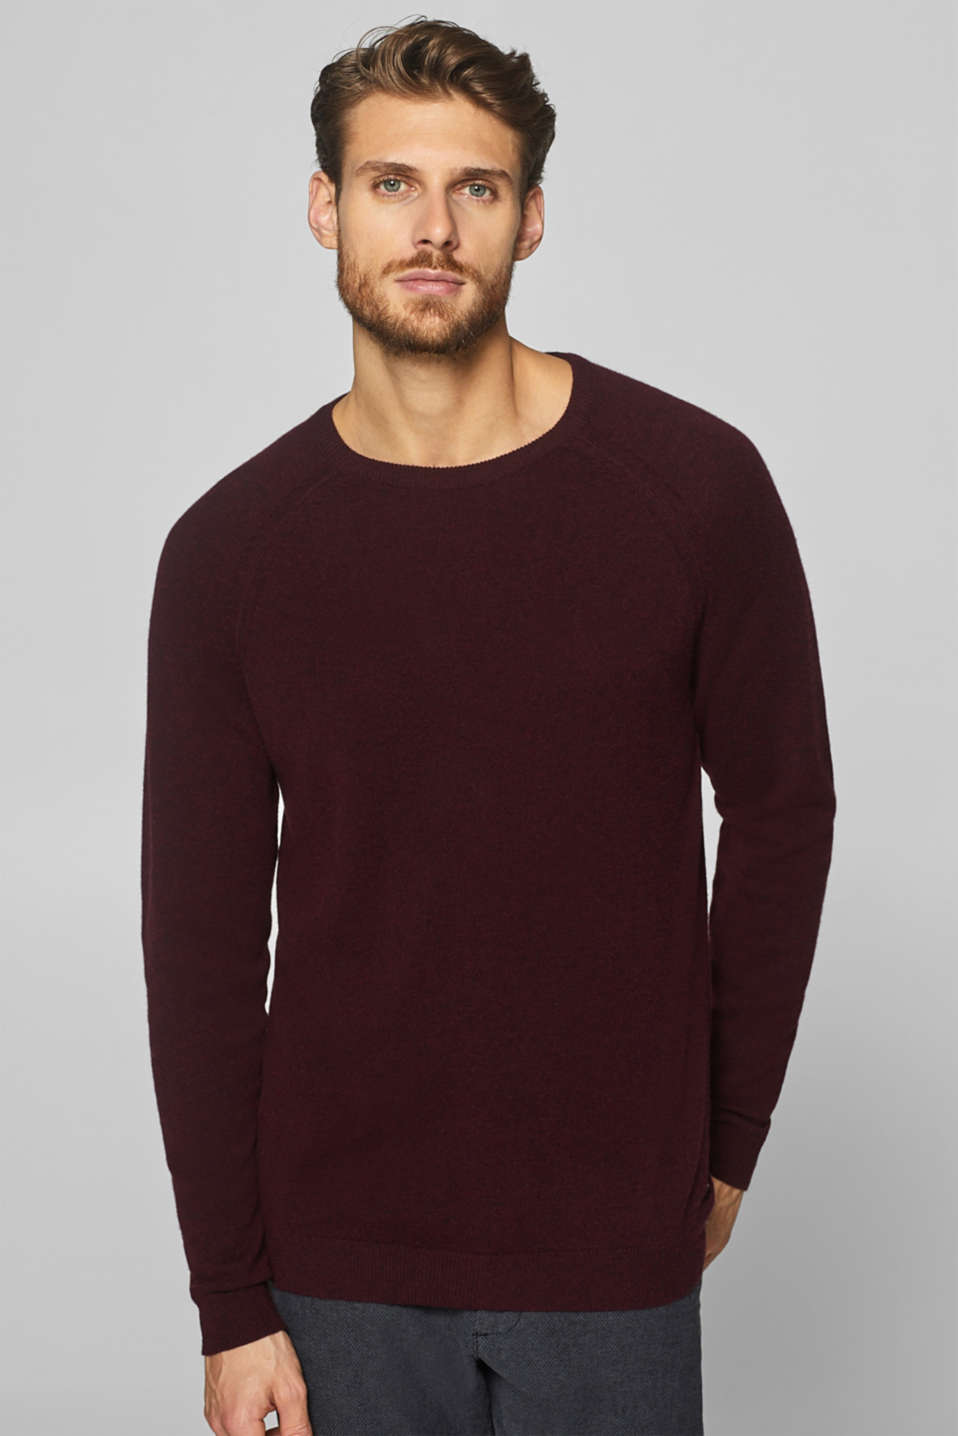 Esprit - A cashmere/wool blend: fine knit jumper